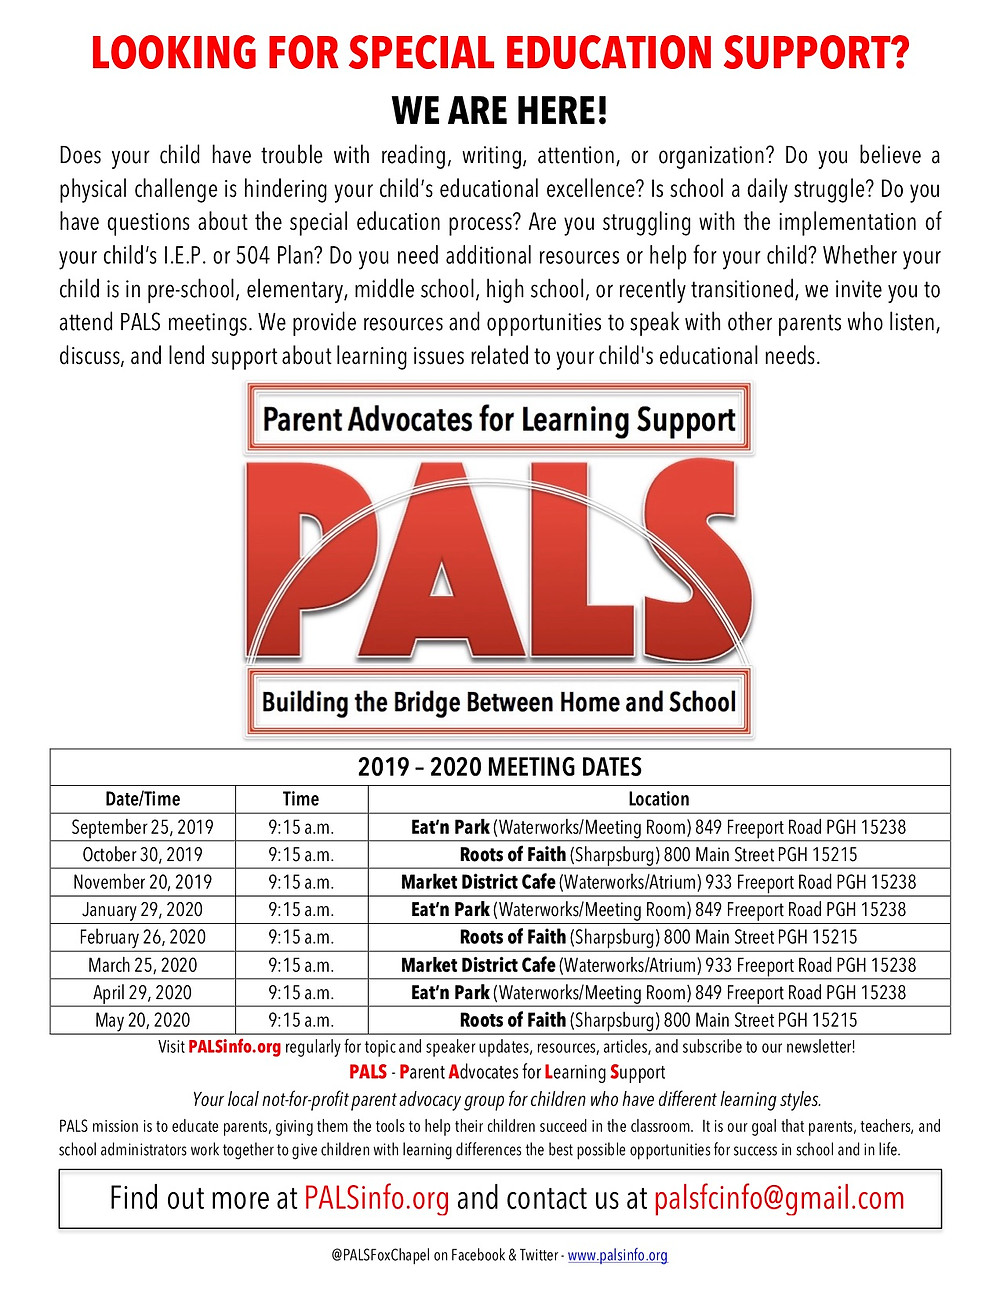 PALS: Parent Advocates for Learning Support 2019-2020 Meeting Schedule